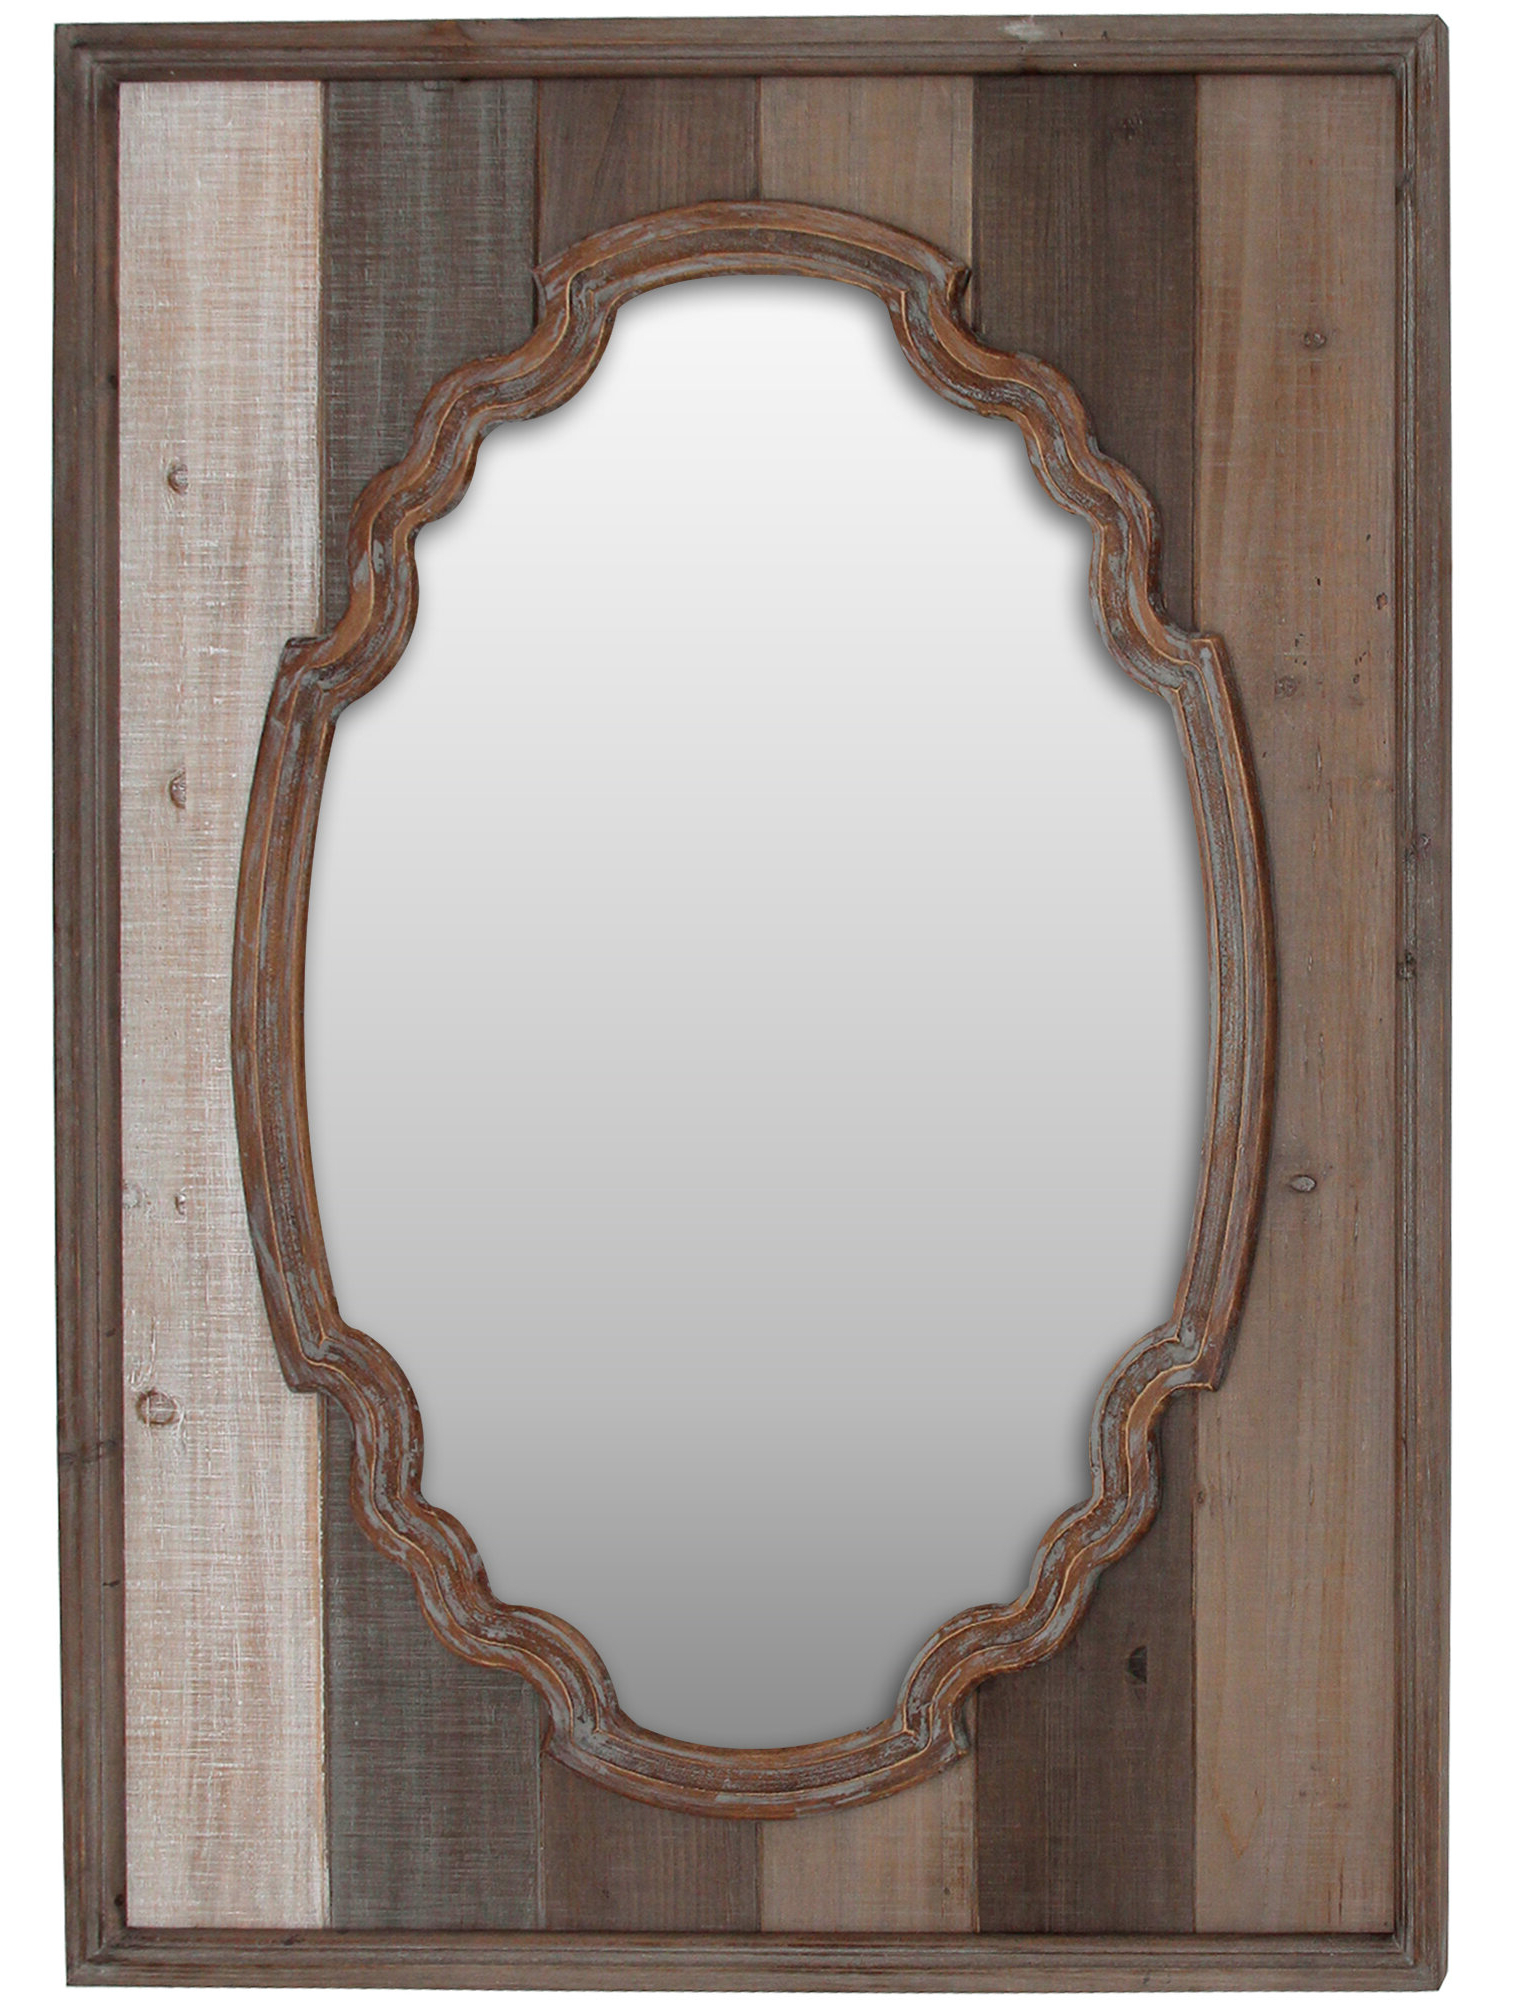 Favorite Jaylyn Elegant Farmstead Rustic Accent Mirror Intended For Longwood Rustic Beveled Accent Mirrors (View 14 of 20)